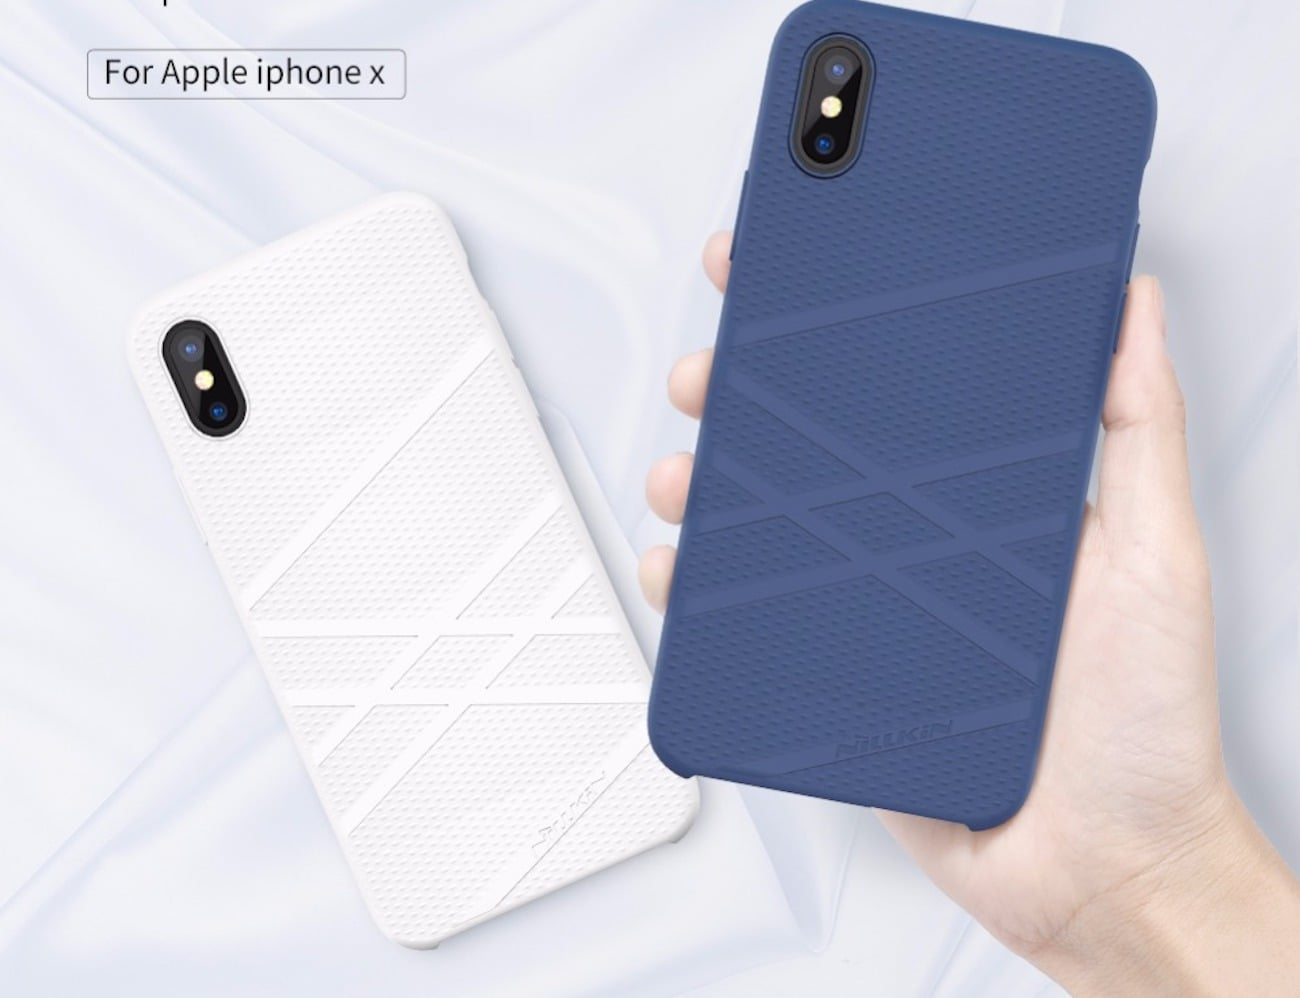 Iphonex Phone Cases: Ultra-Thin Silicone IPhone X Case » Gadget Flow